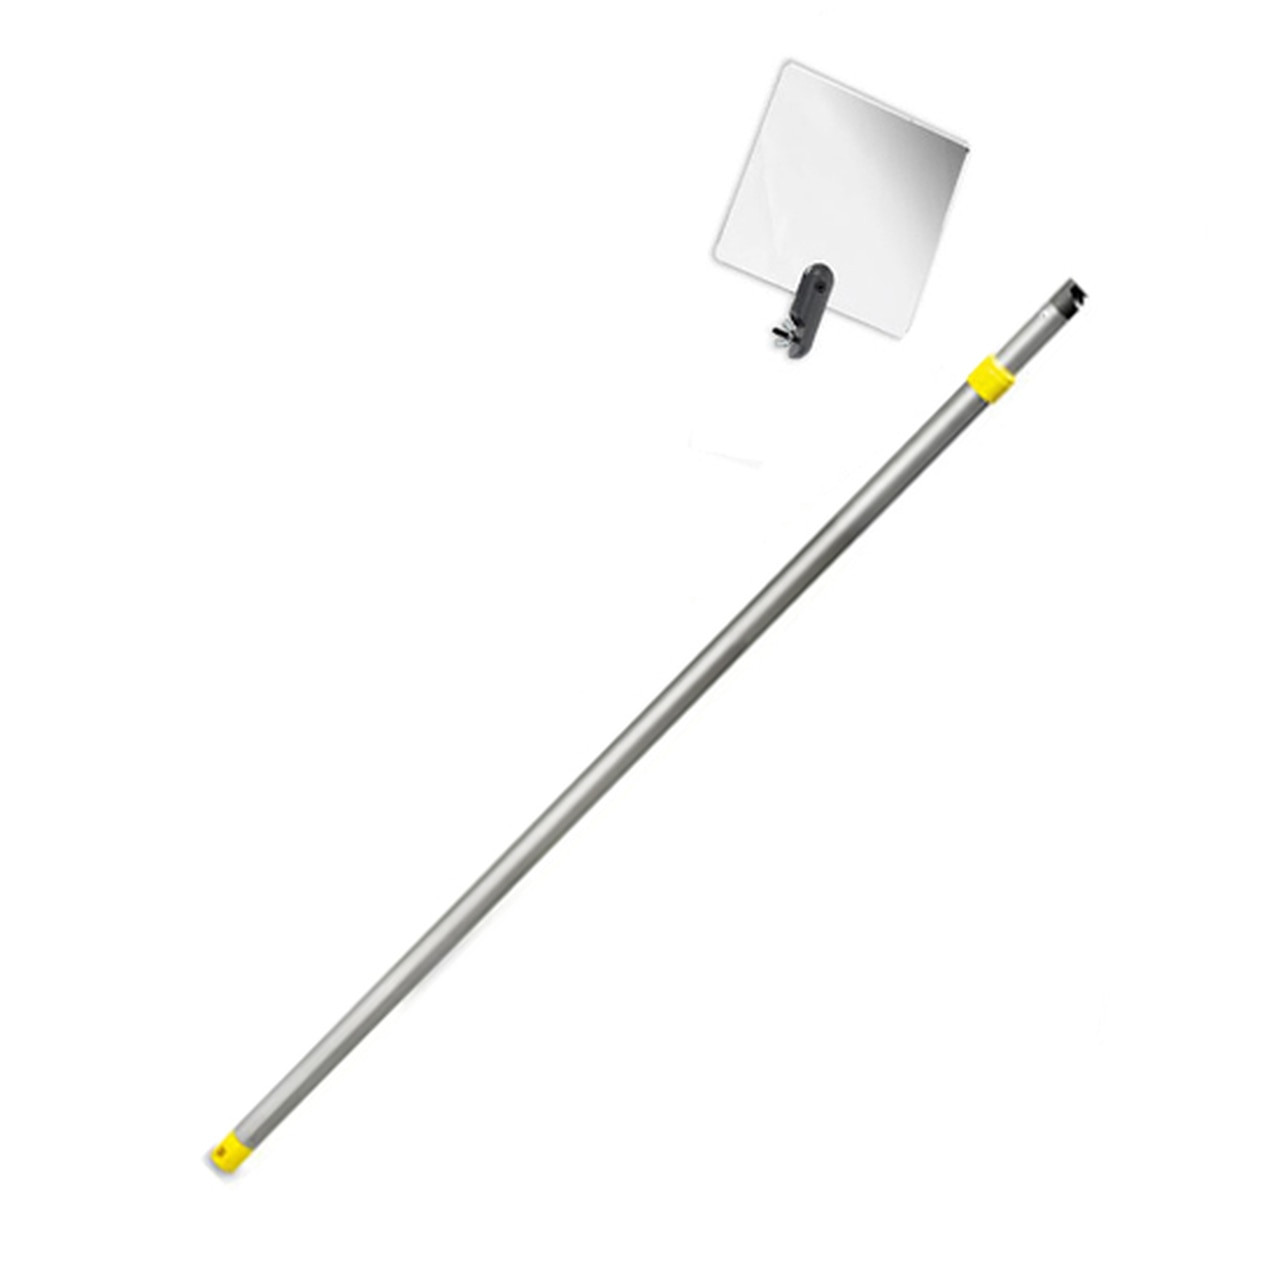 Inspection Mirror Telescoping 2 ft - 4 ft Pole with 6 in x 6 in Acrylic Mirror (Home & Septic Inspection etc)